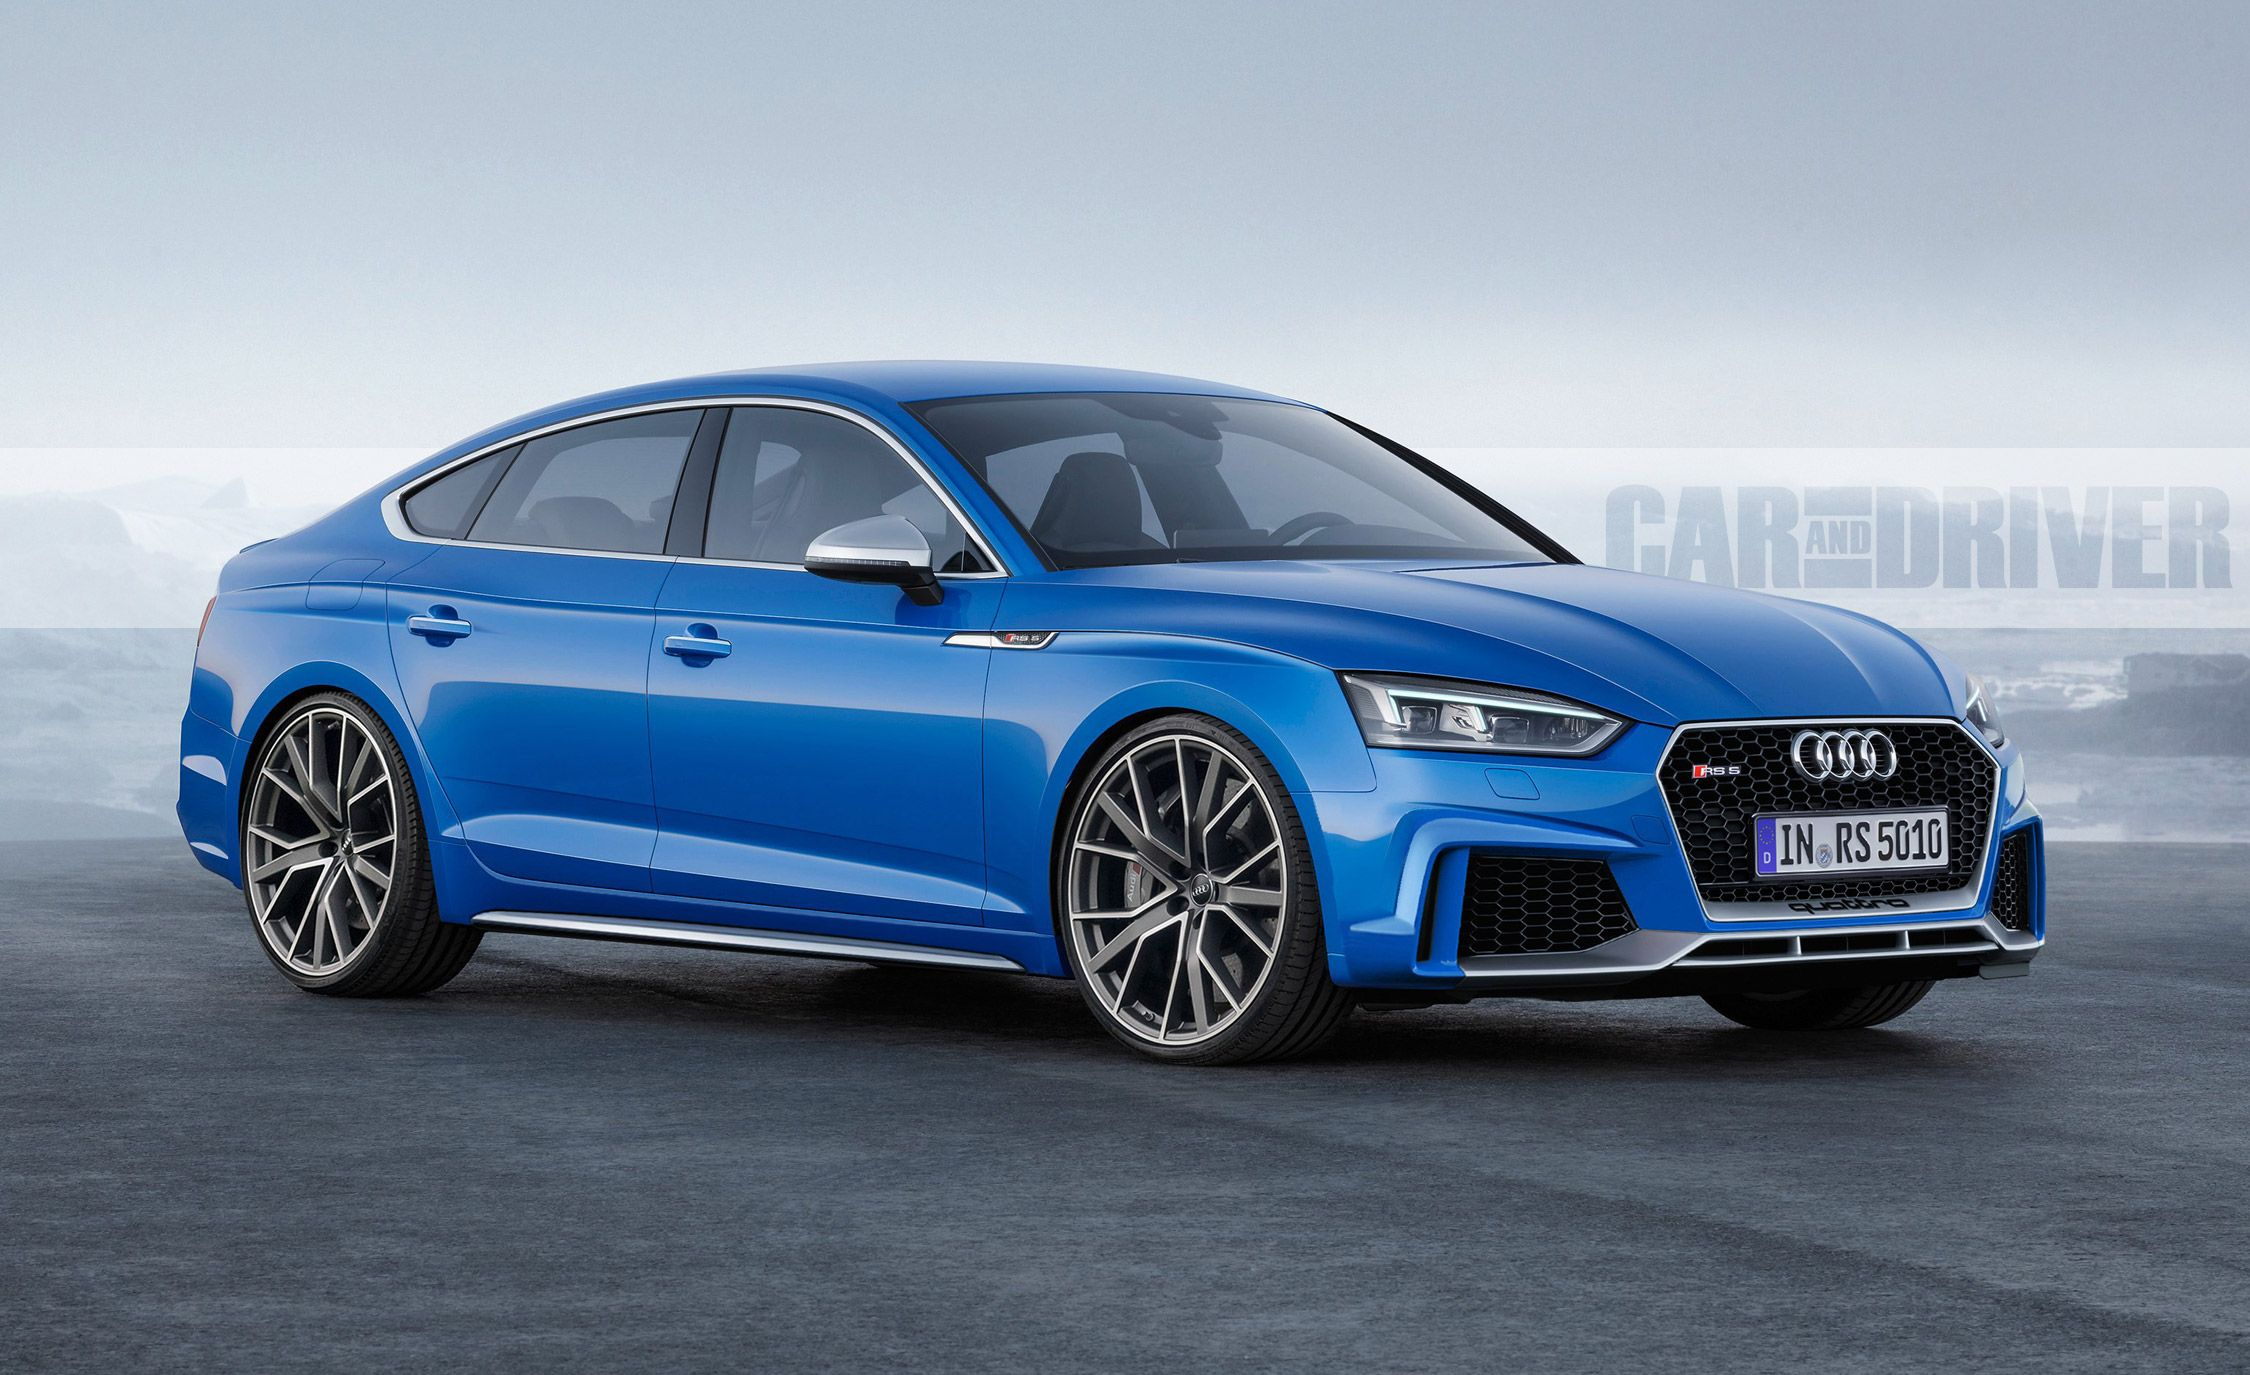 Audi Rs5 Canada Price >> 2019 Audi Rs5 Reviews Audi Rs5 Price Photos And Specs Car And